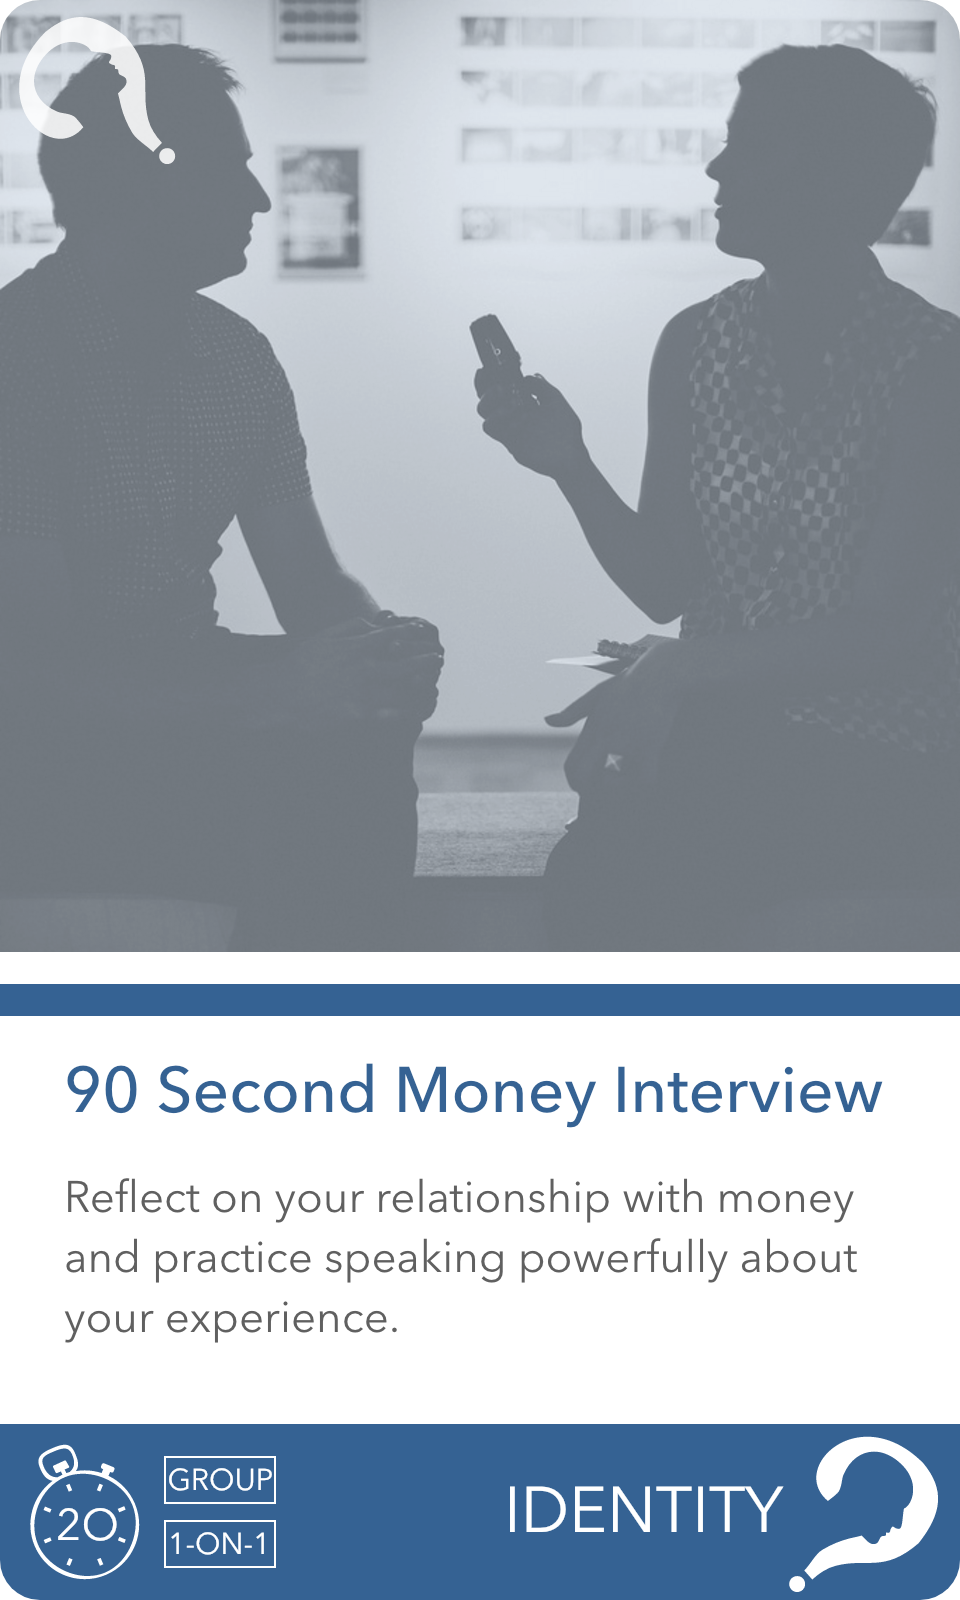 90 Second Money Interview (Front)@2x.png